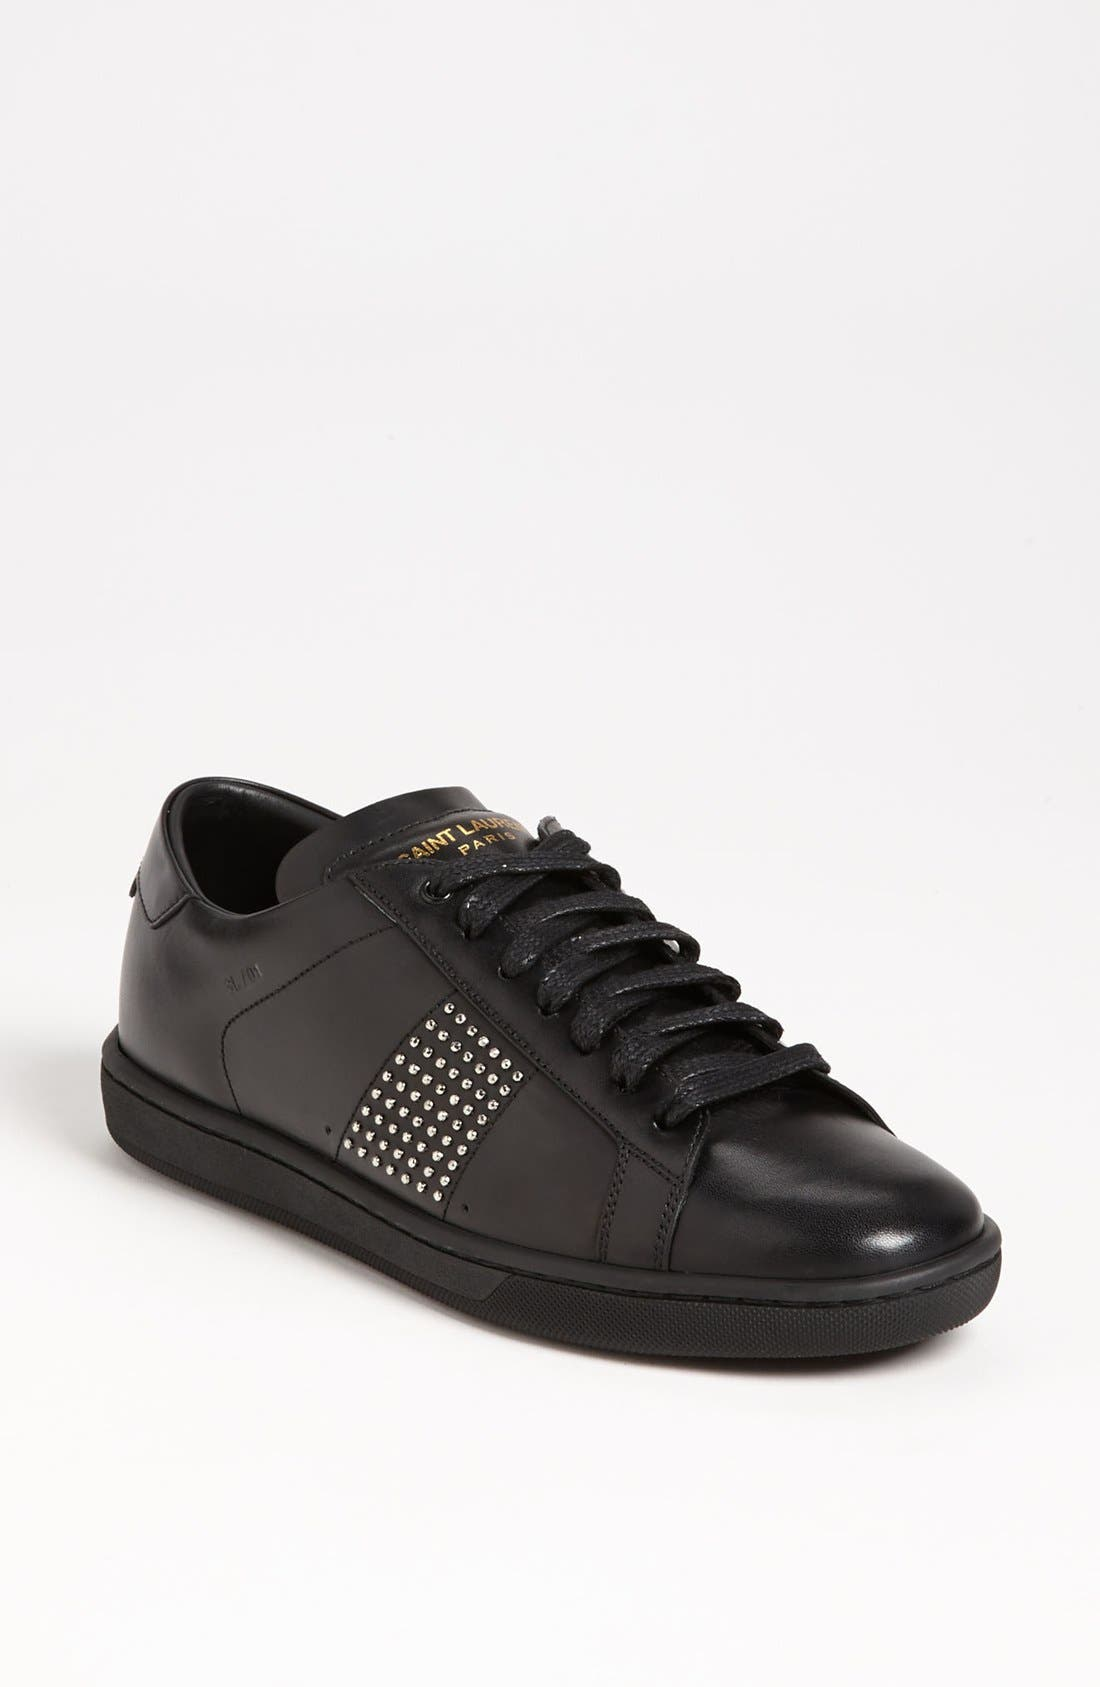 Main Image - Saint Laurent Low Top Sneaker